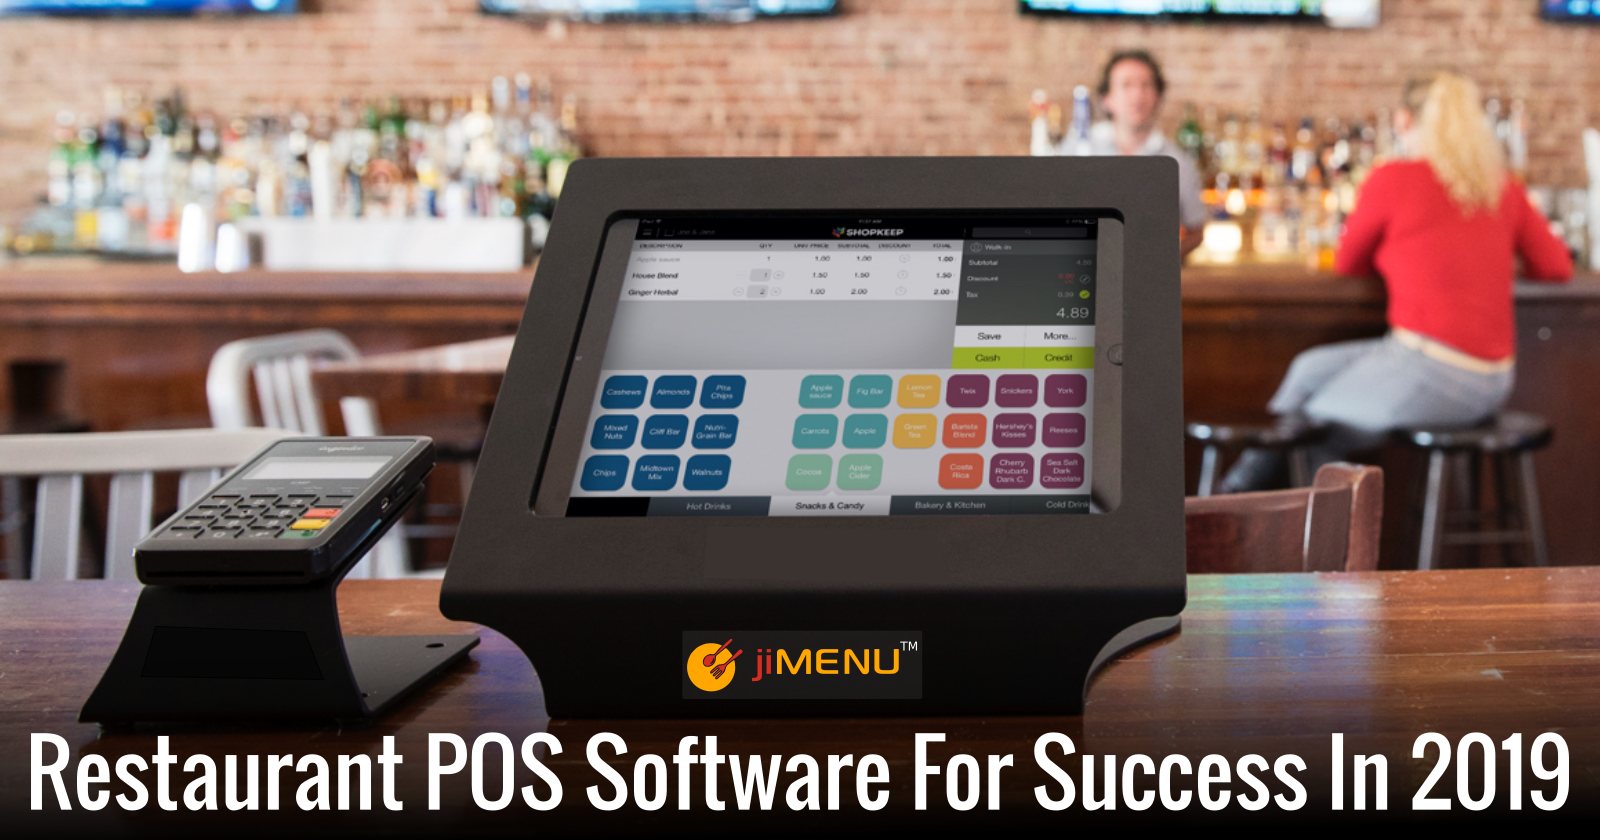 Restaurant POS Software For Success in 2019